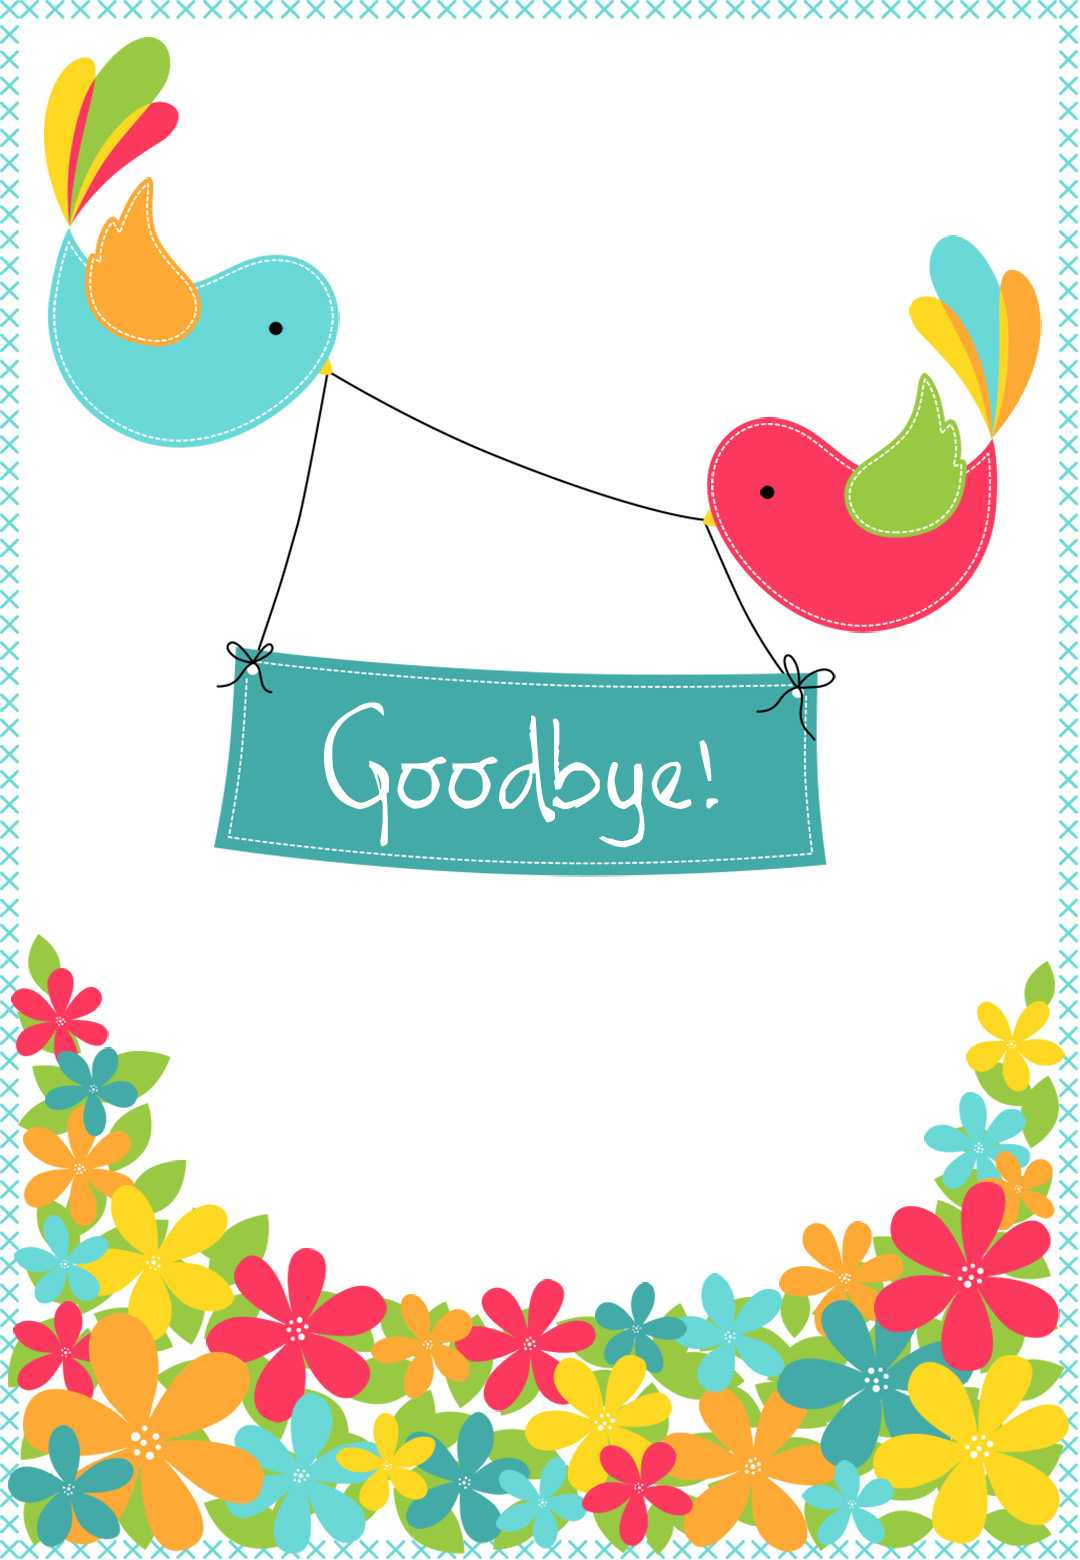 Goodbye From Your Colleagues - Good Luck Card (Free Within Goodbye Card Template